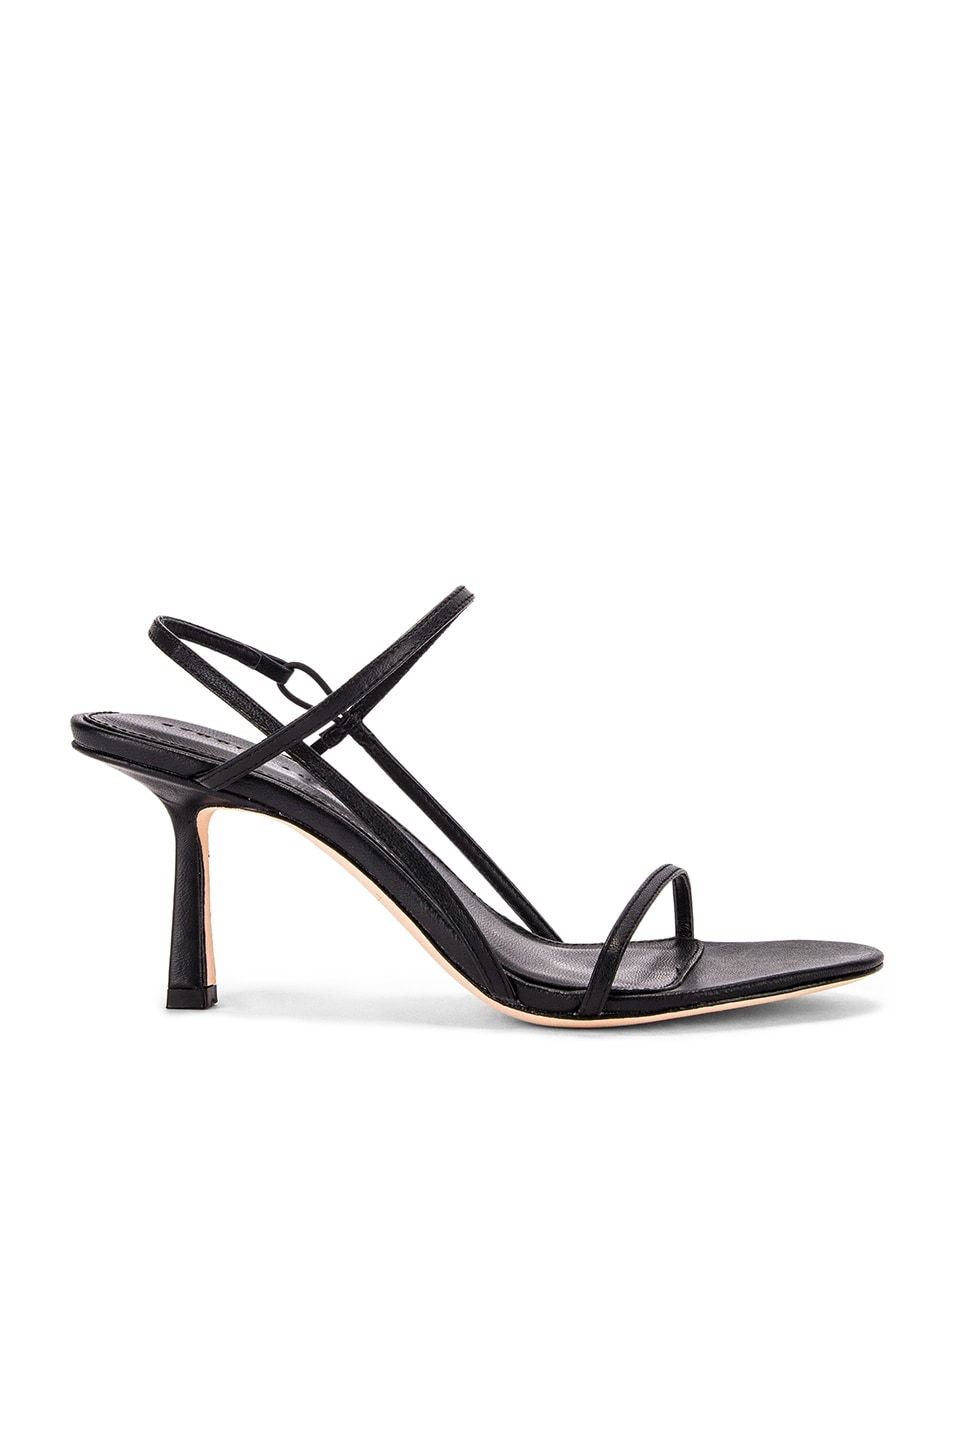 Image 1 of Studio Amelia 2.3 Slingback Heel in Black Nappa Leather